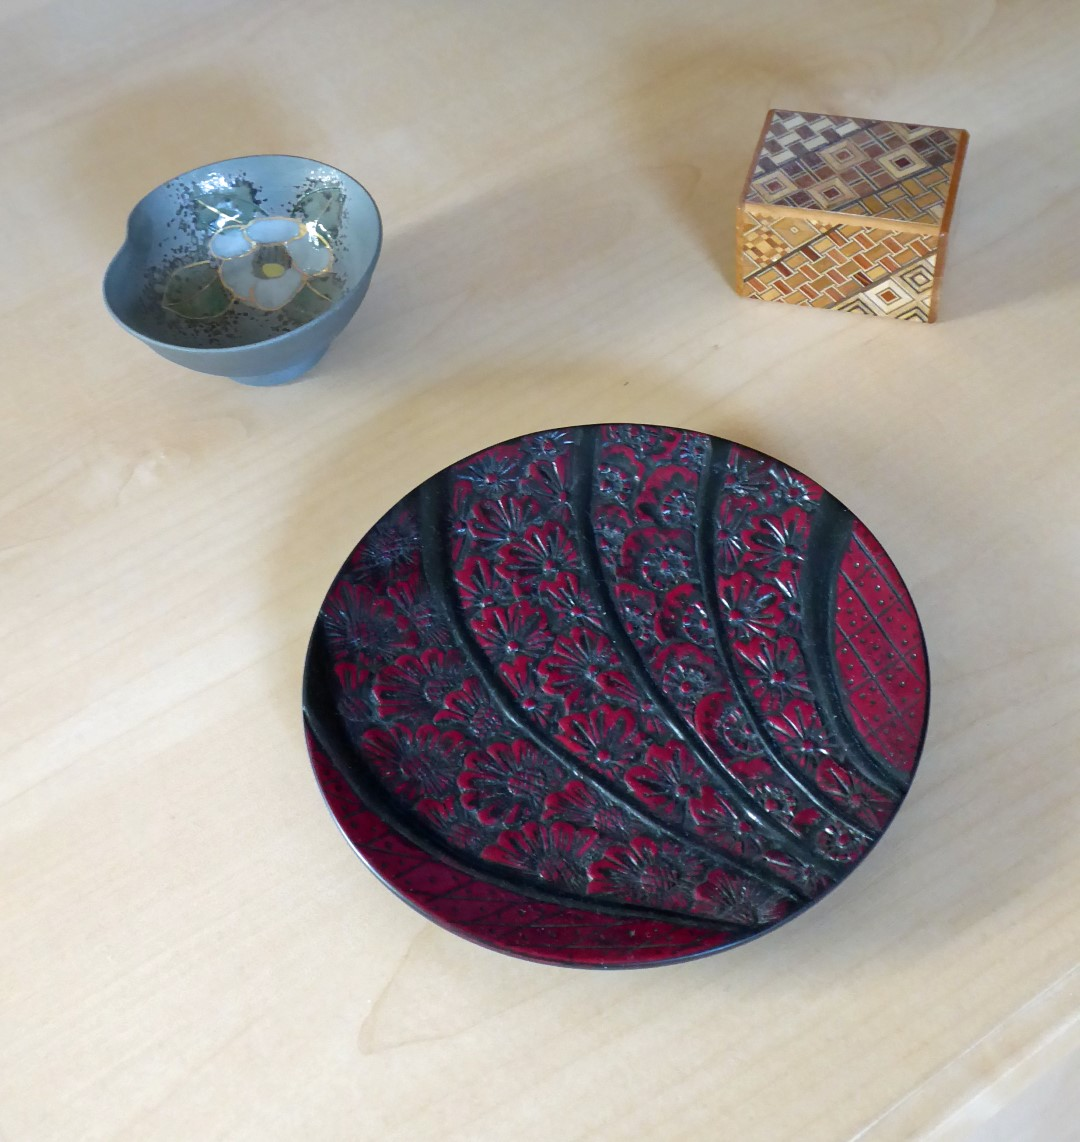 Small bowl, red platter and wooden box